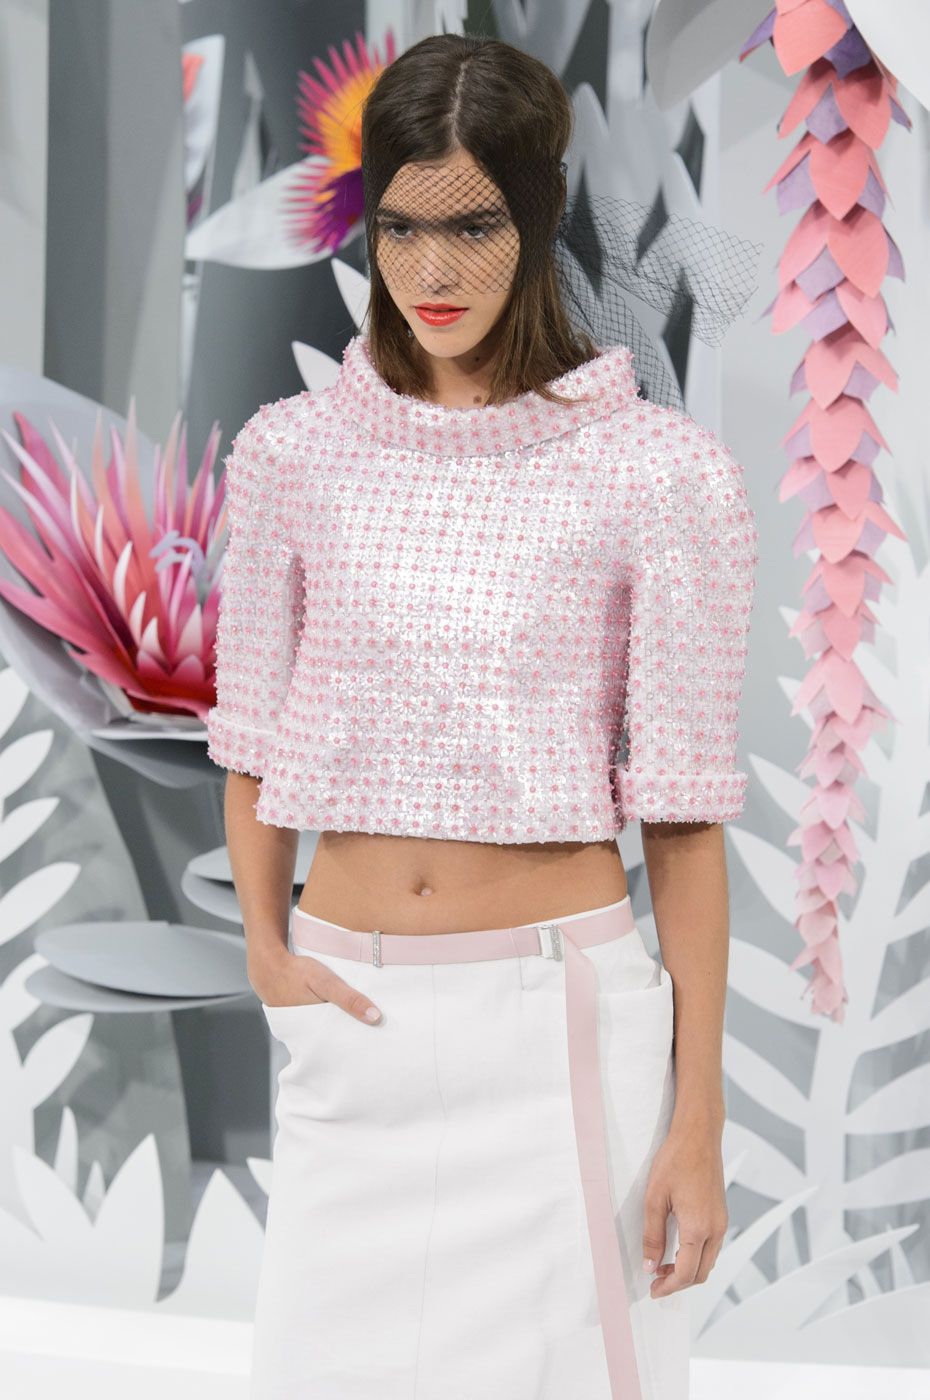 Chanel-fashion-runway-show-haute-couture-paris-spring-summer-2015-the-impression-126